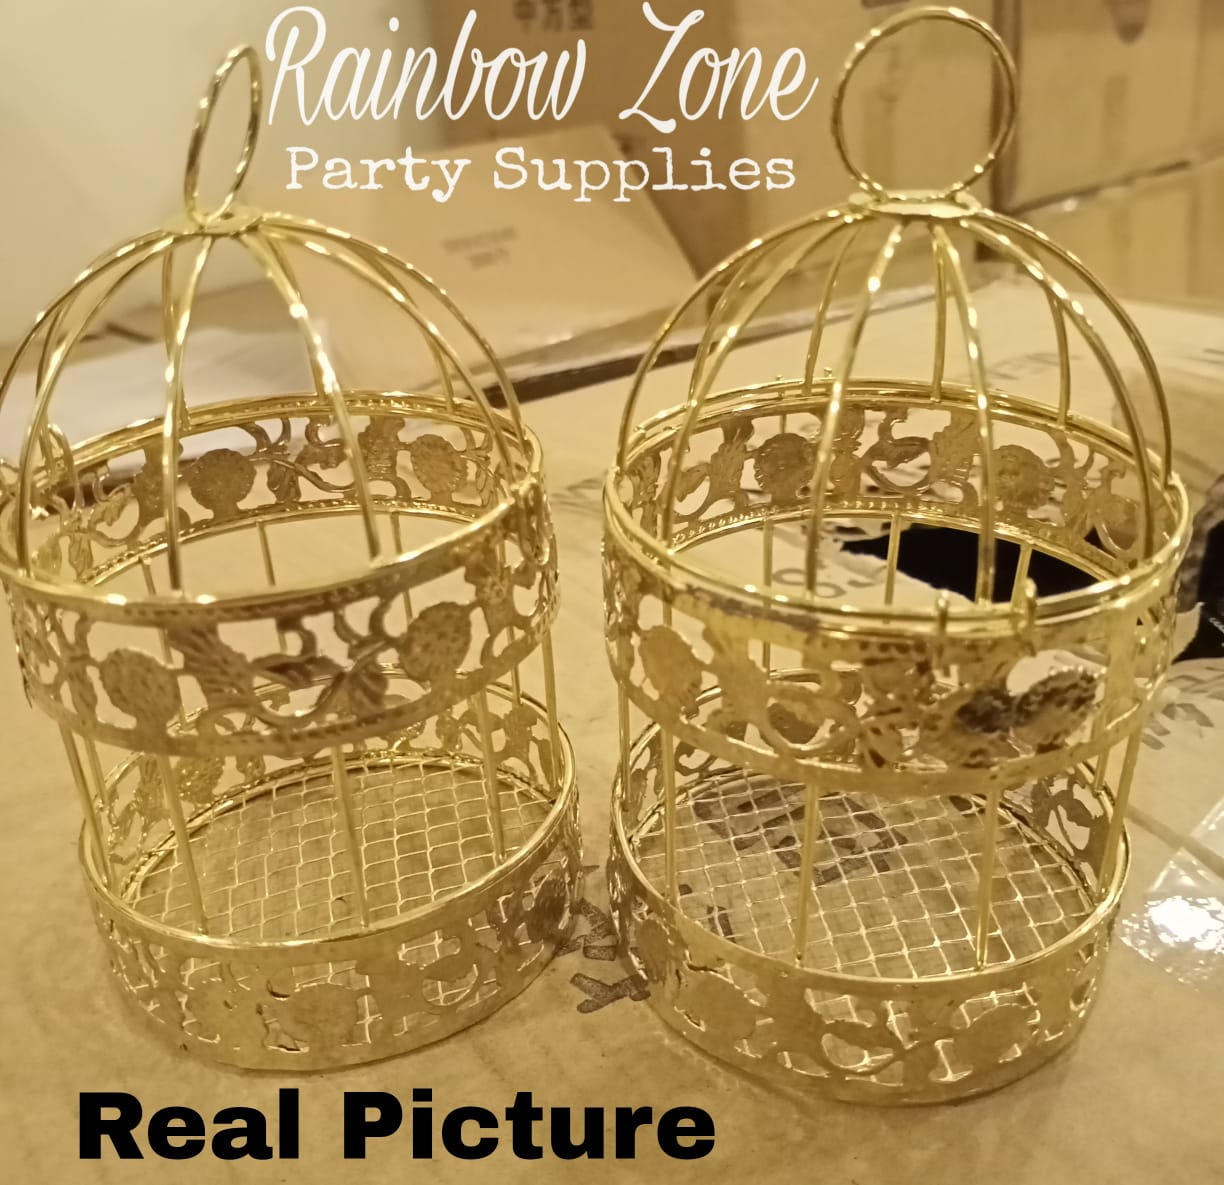 Mini Iron Golden Cages 1 Piece 4 Inch Height / 2.5 Inch Diameter / Candle Holder / Candy Gift Boxes / Wedding Favor Boxes / Bidh Distributing